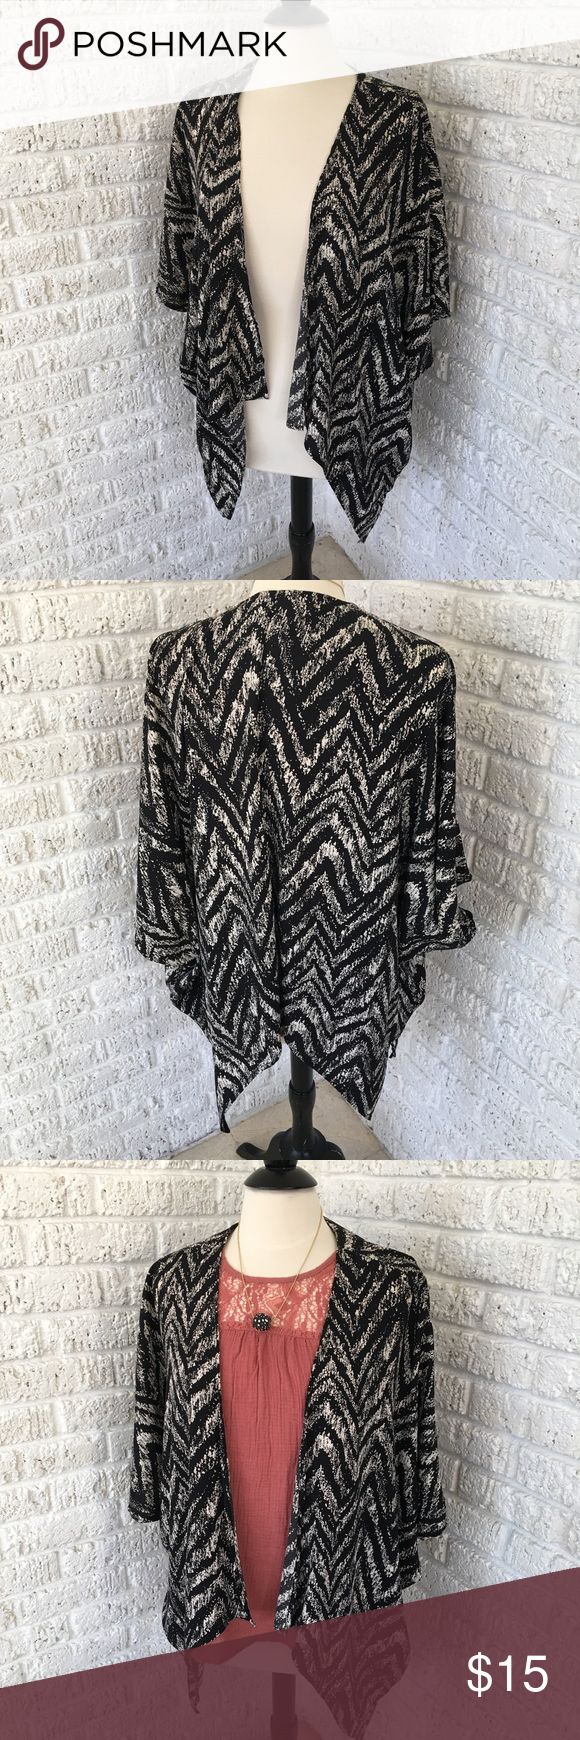 Black & white geometric pattern Boho Kimono shrug Black and white patterned batwing style kimono shrug. Square when flat. 100% polyester. Very light and comfortable. Easily styled with a simple top and leggings. Size Large. painted threads Tops Tunics